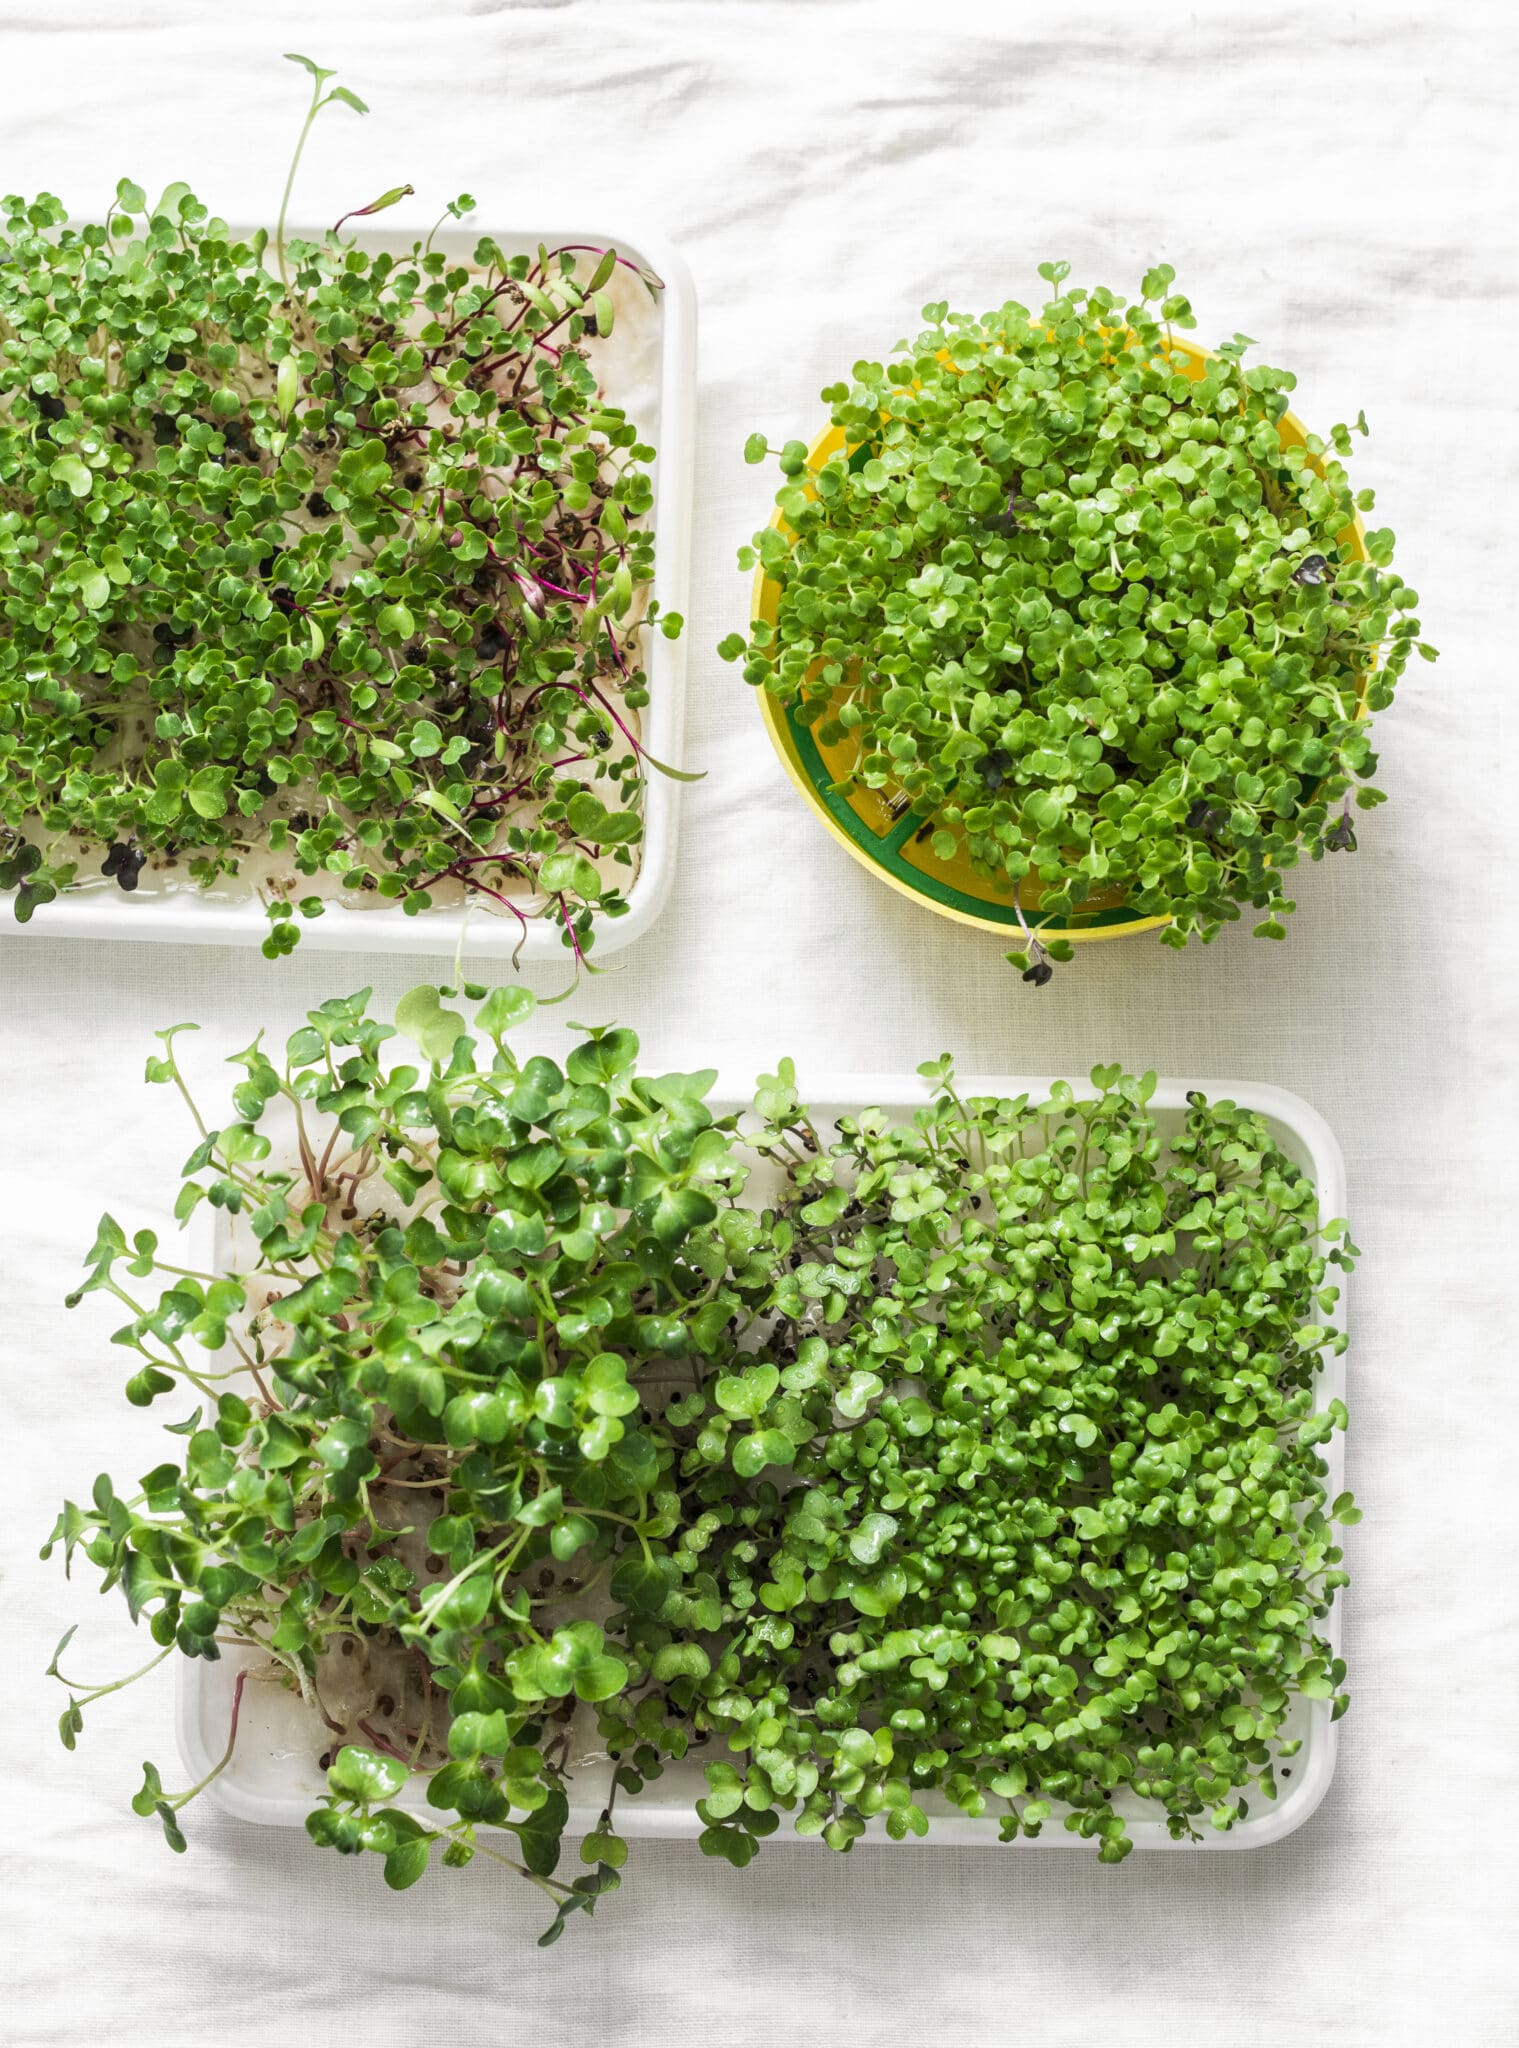 Homemade micro greens on a light background.